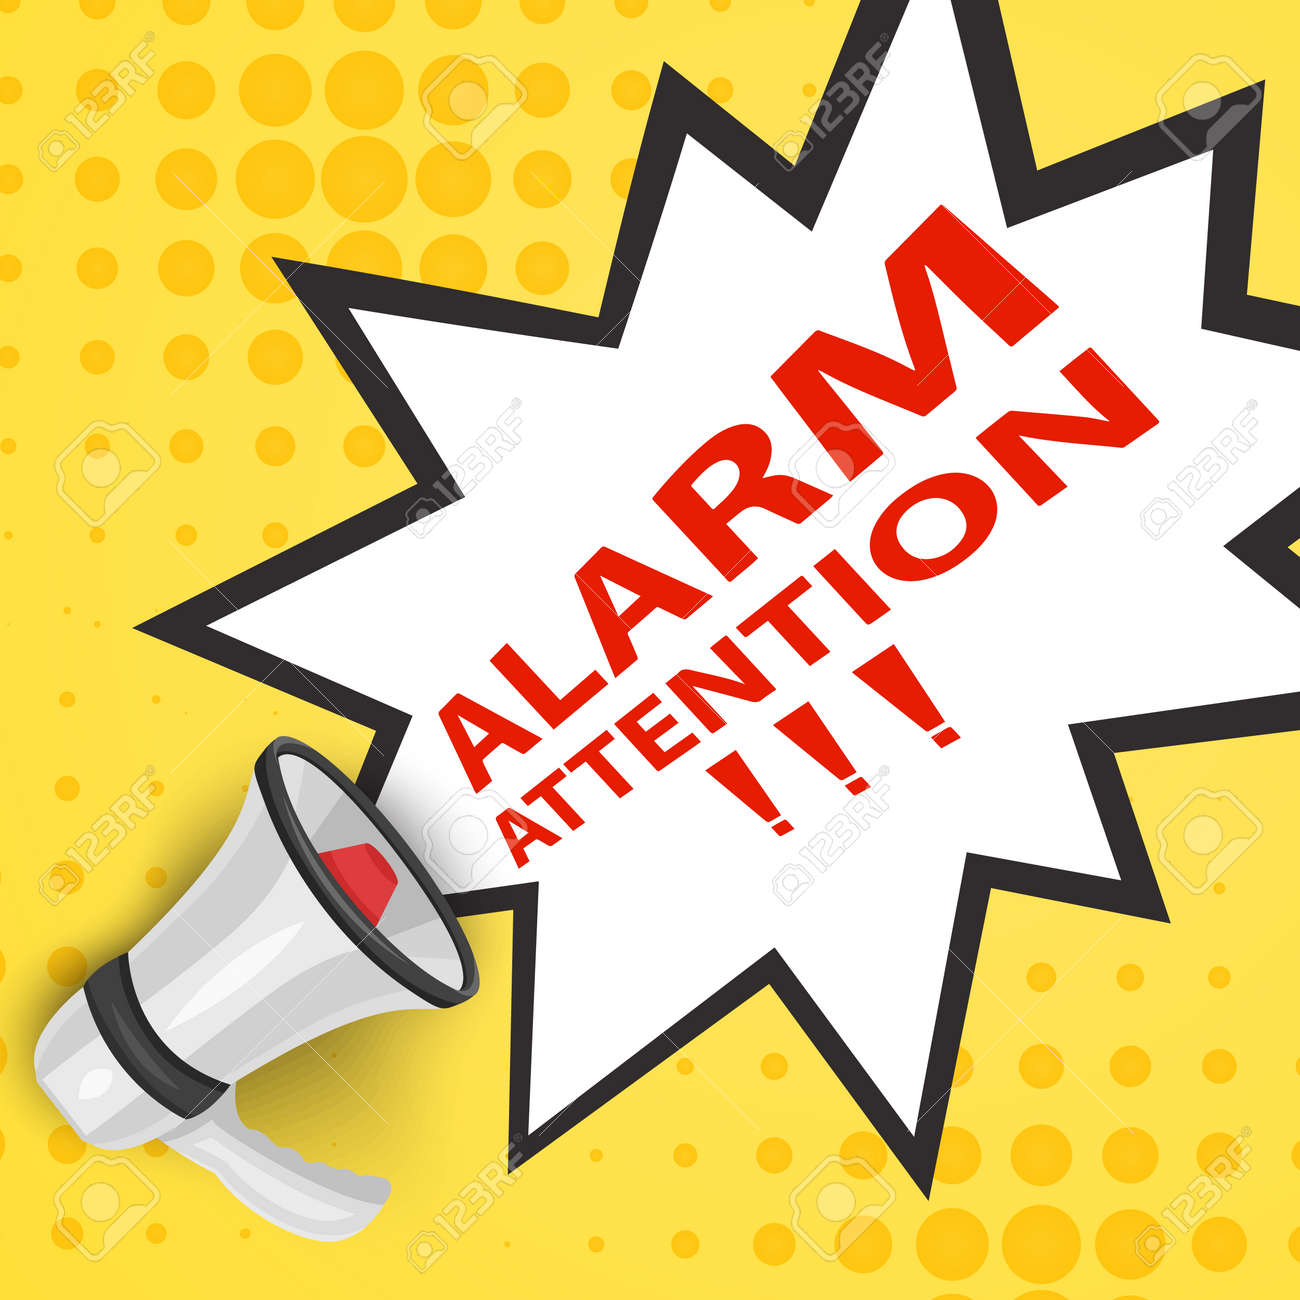 Attention please concept of important announcement. Vector illustration - 173919116